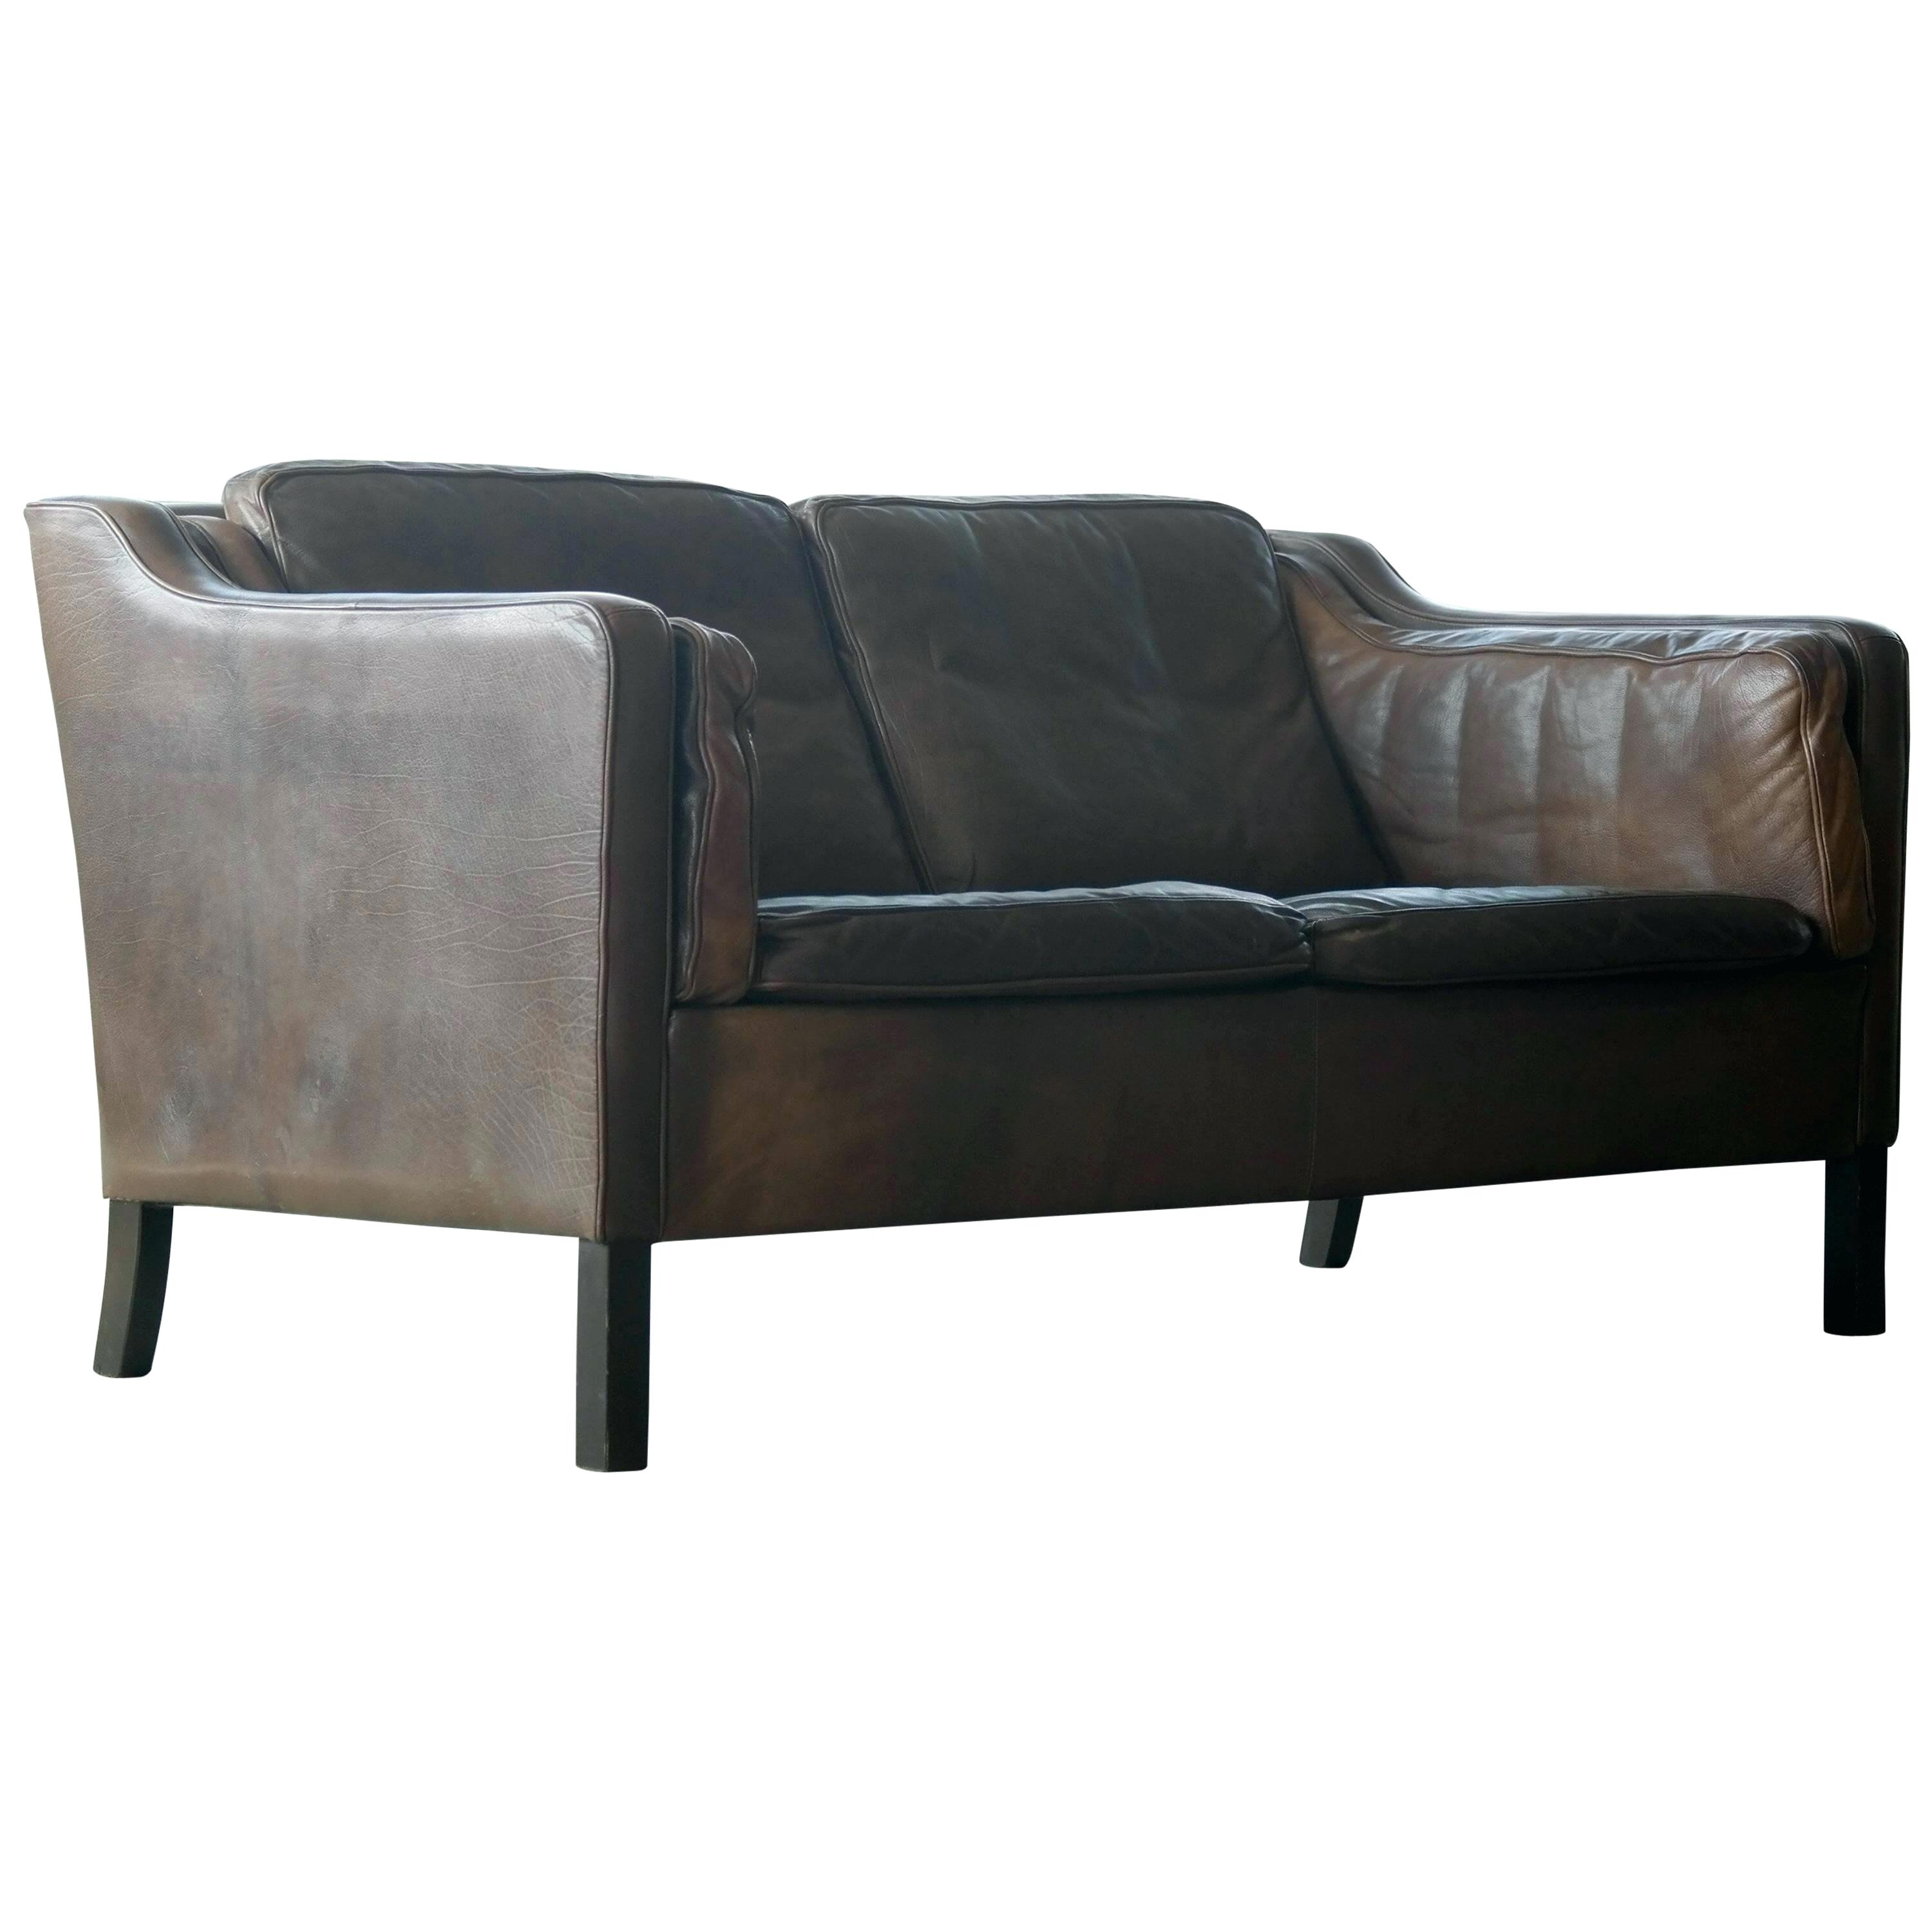 Buffalo Leather Couch Leather Couch Repair Buffalo Ny – Thedropin.co in Sectional Sofas at Buffalo Ny (Image 2 of 15)